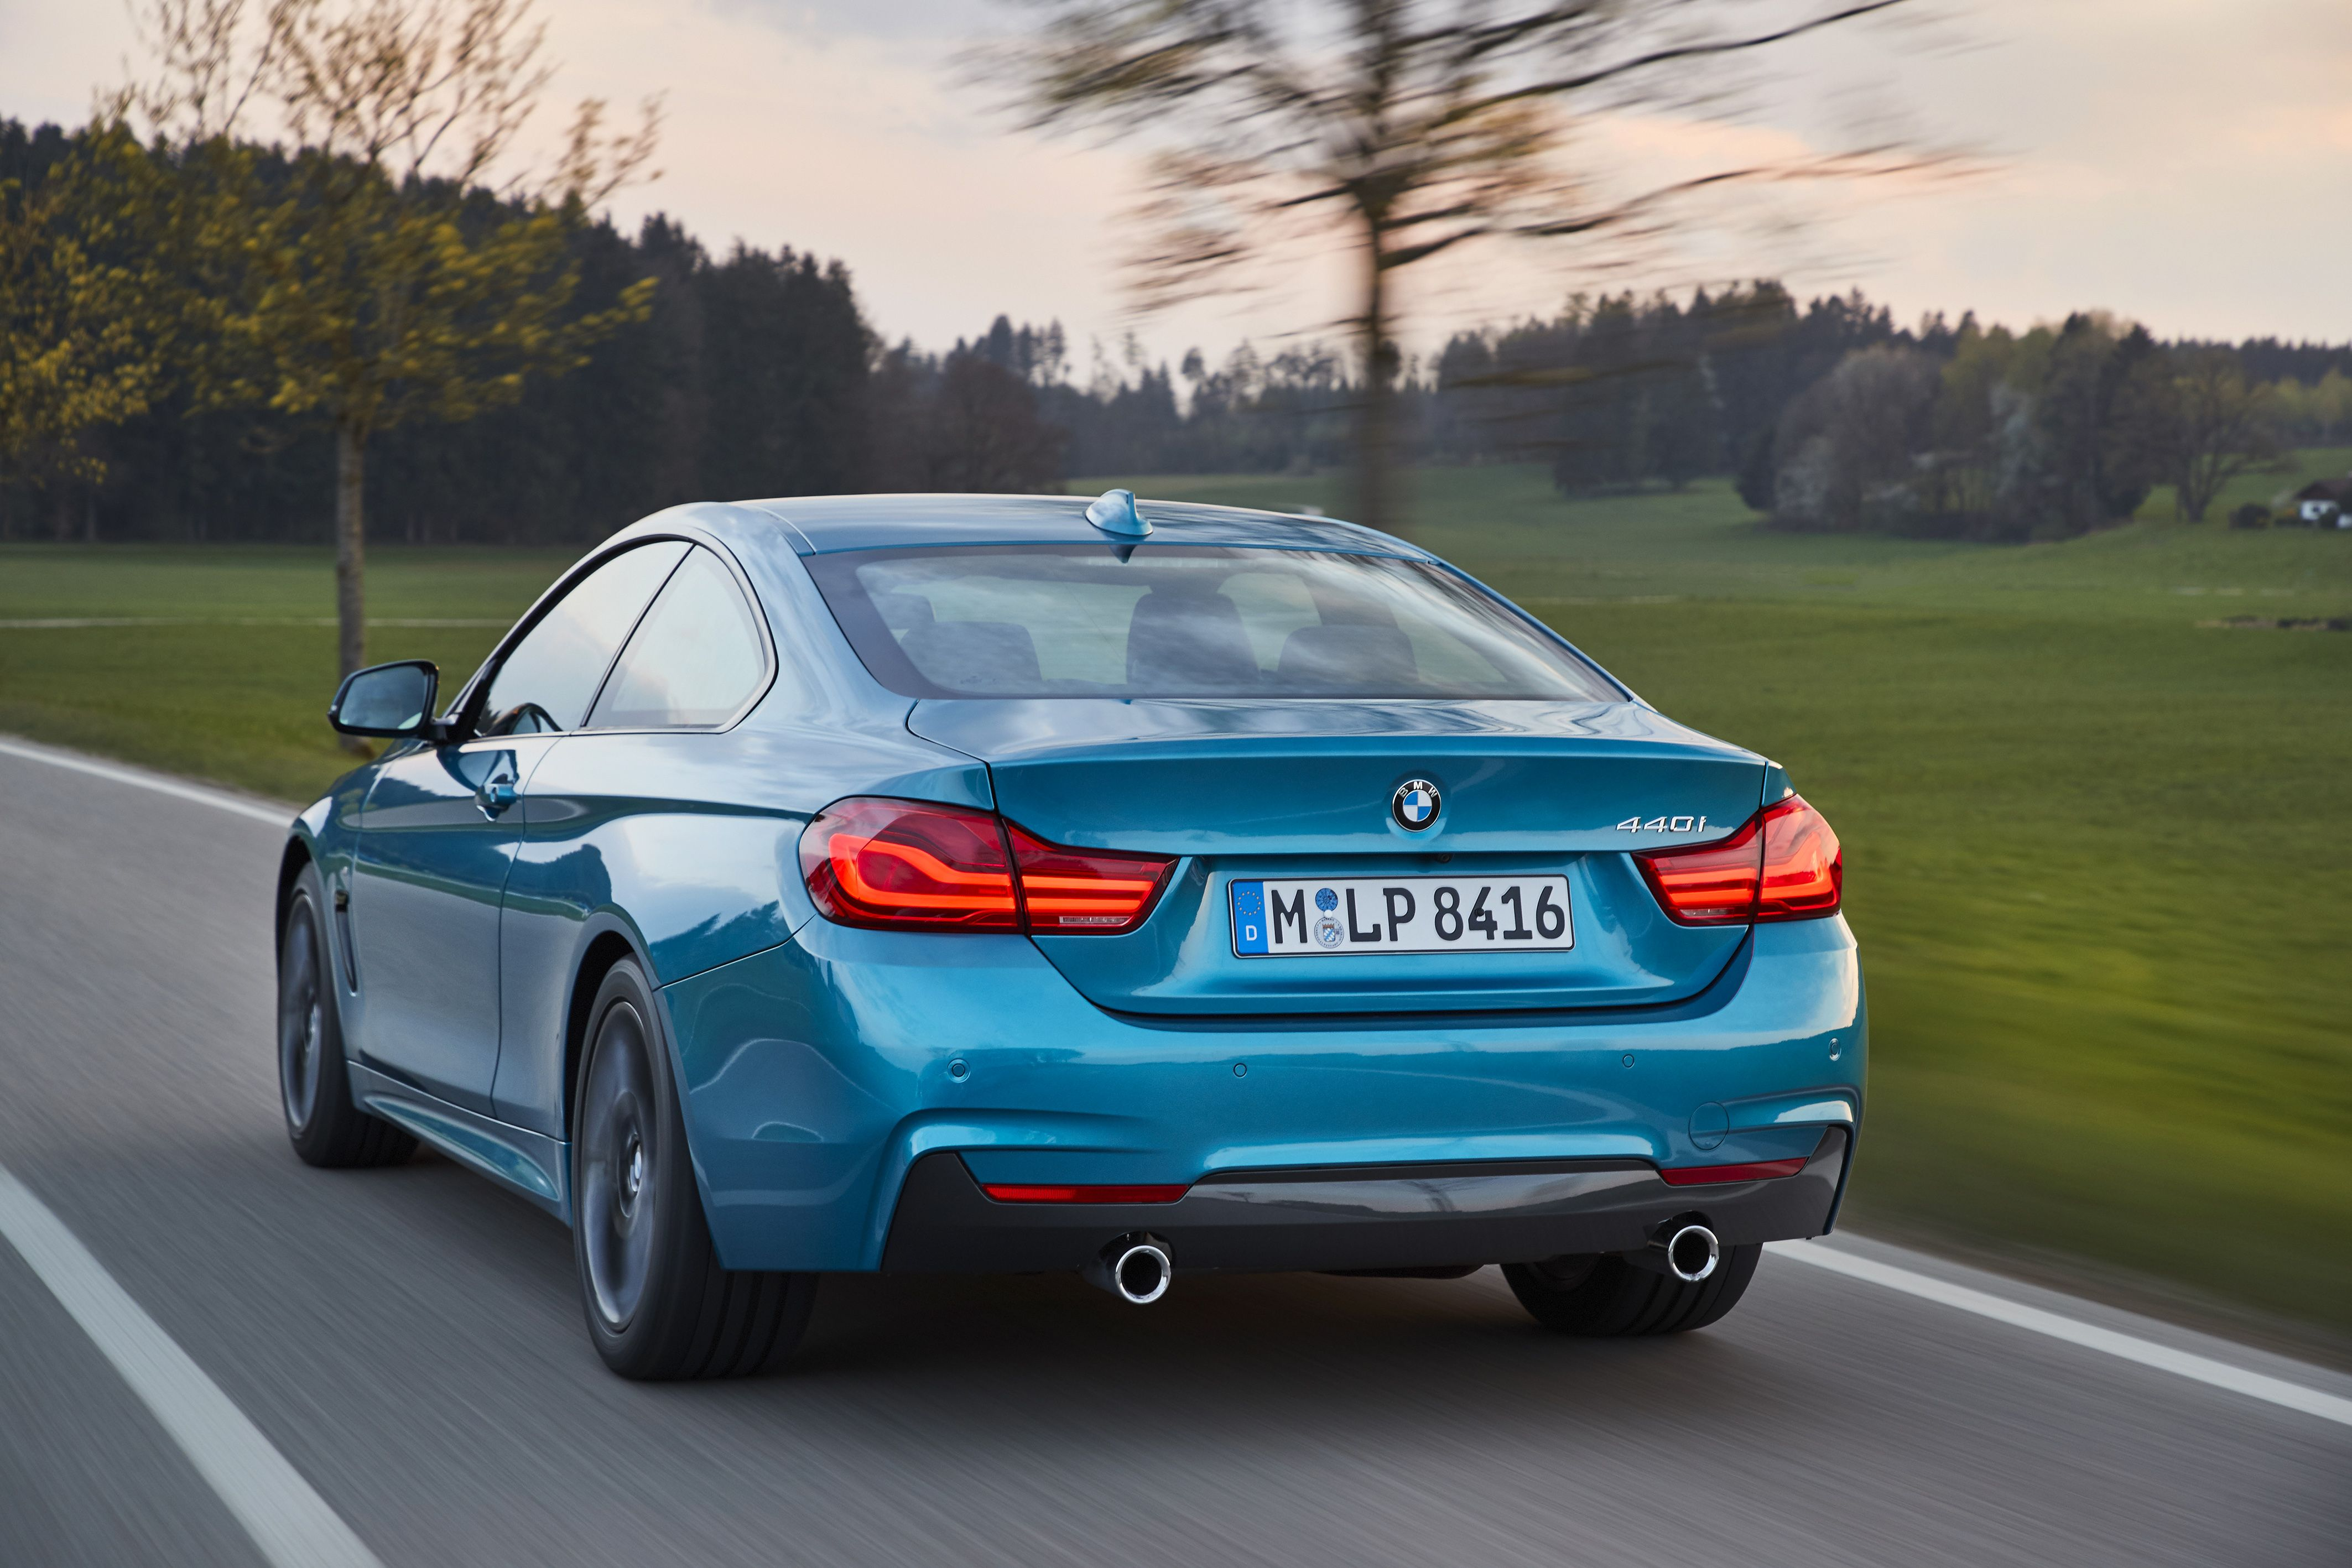 Pin By Bmw Life On Bmw Super Cars In 2020 Bmw Sports Coupe 2017 Bmw